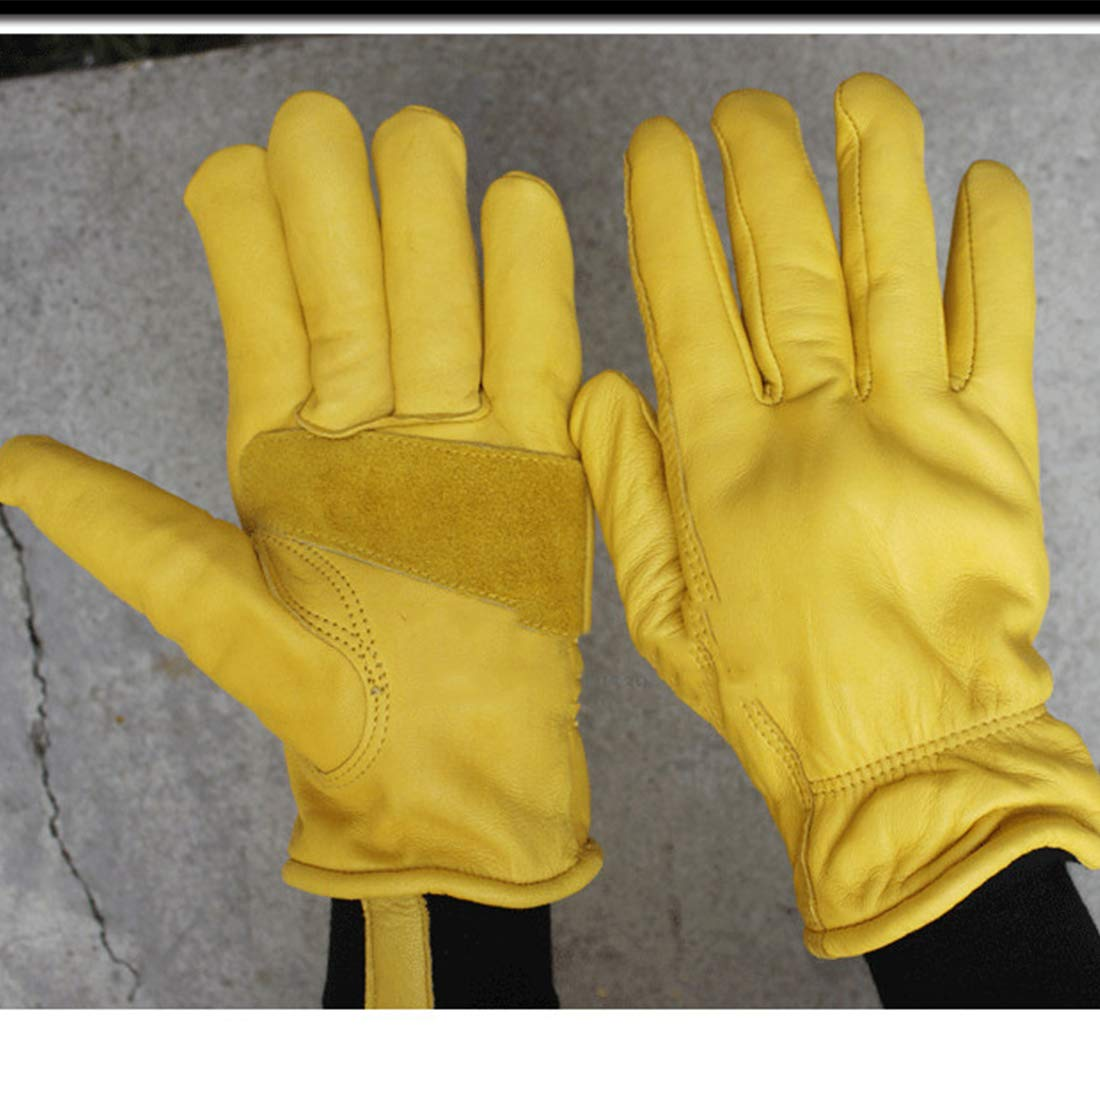 Winter Gloves Genuine Cowhide Leather Snow Working Glove Lined with Thick and Warm Gift